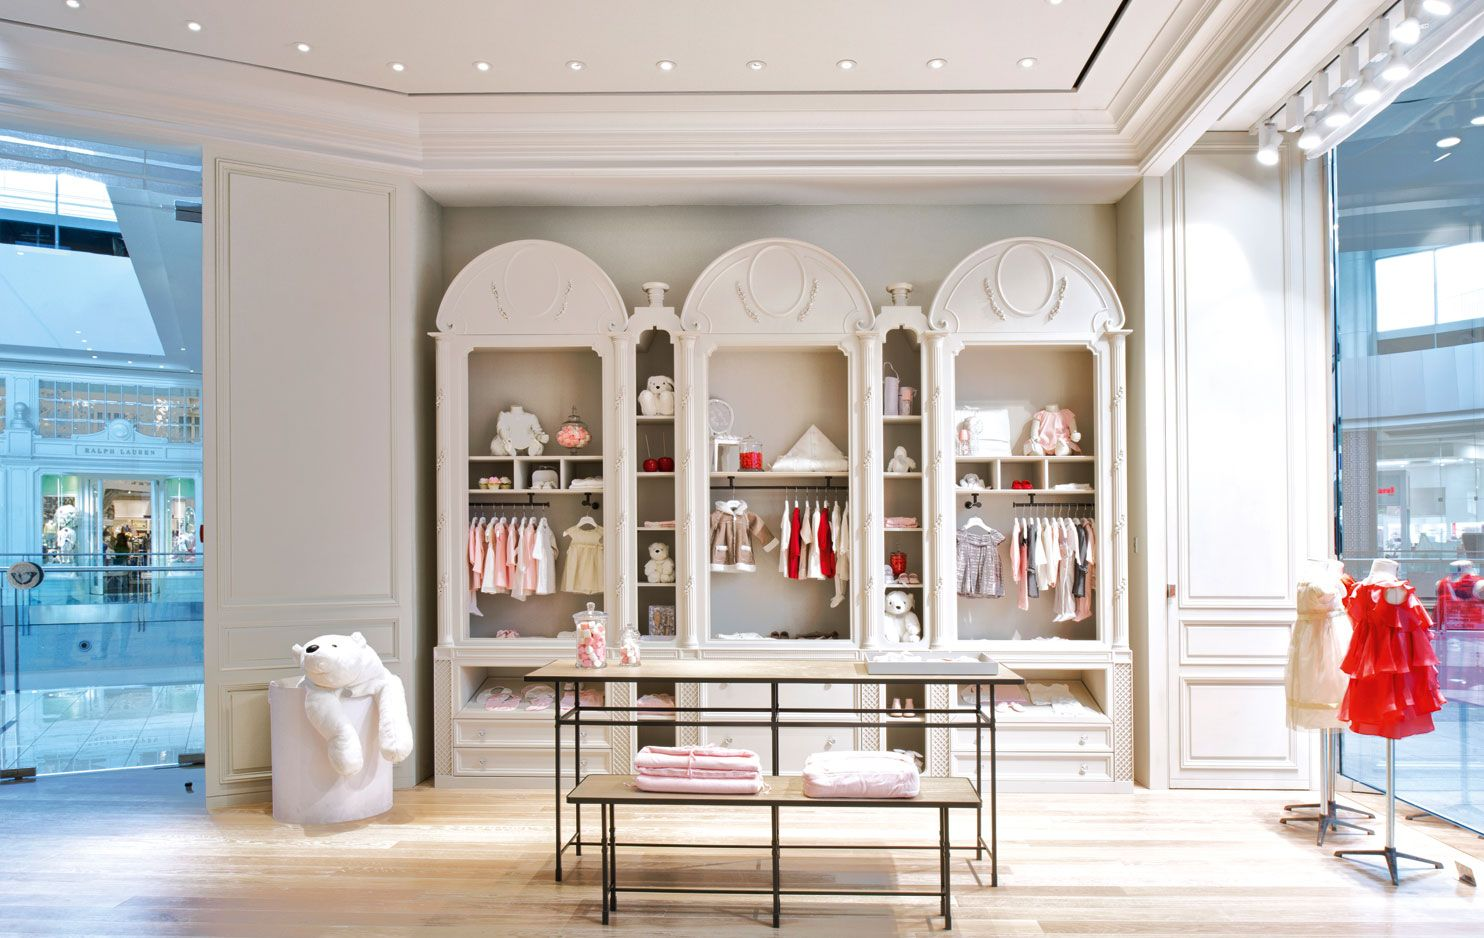 THE NEW BABY DIOR AND DIOR KIDS BOUTIQUE IN PARIS